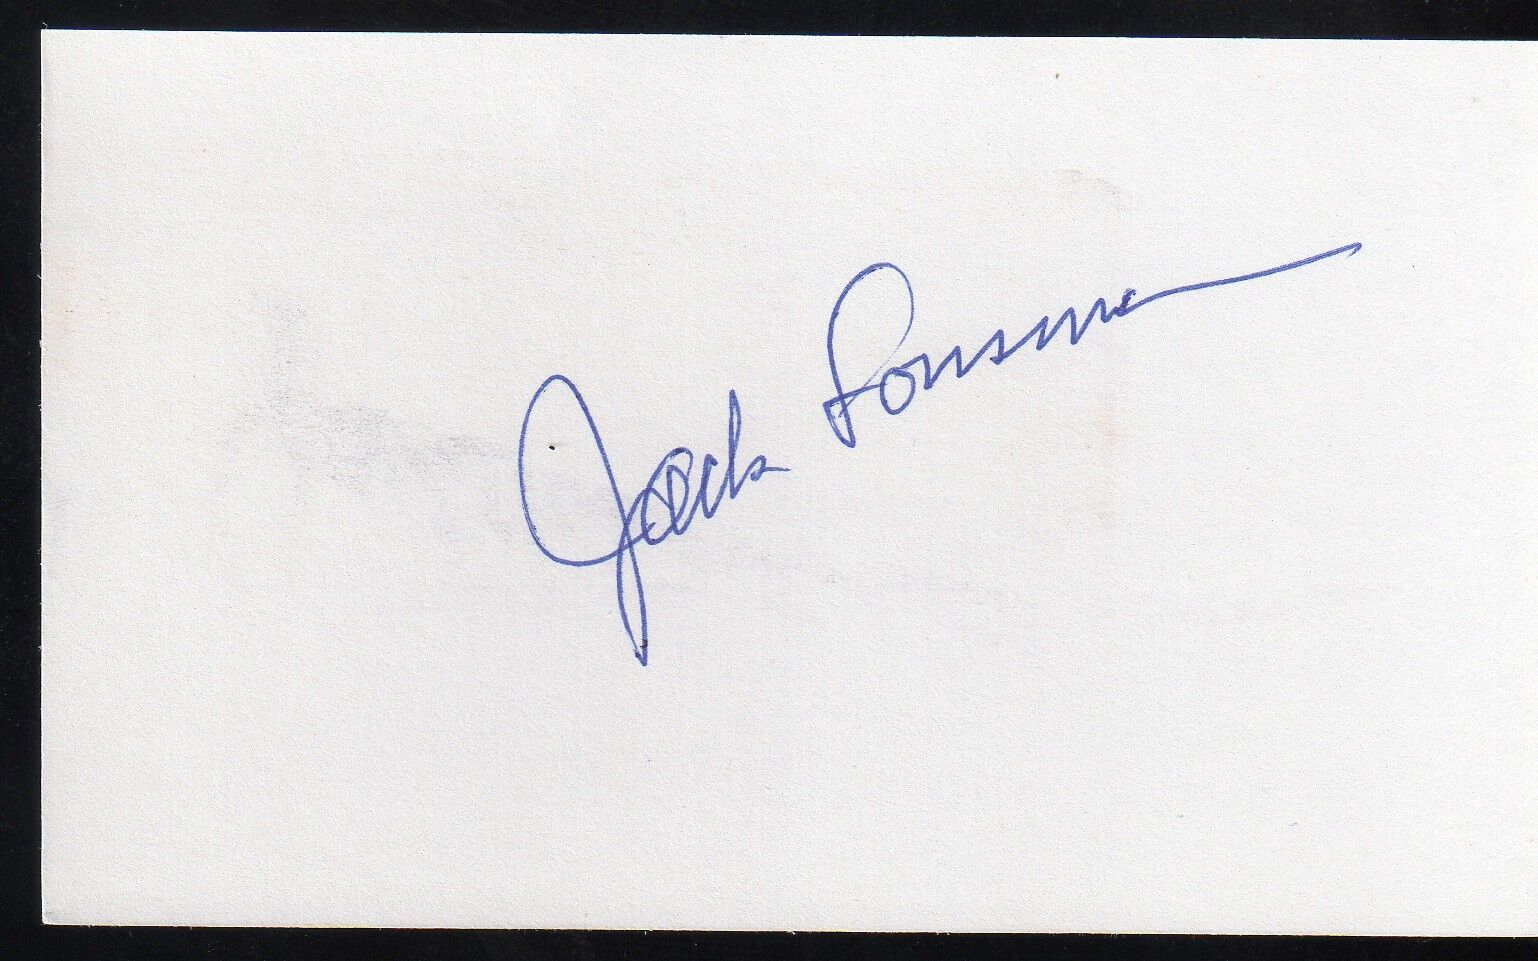 s l1600 - JACK LOUSMA Signed Index Card - NASA Astronaut Autograph Auto